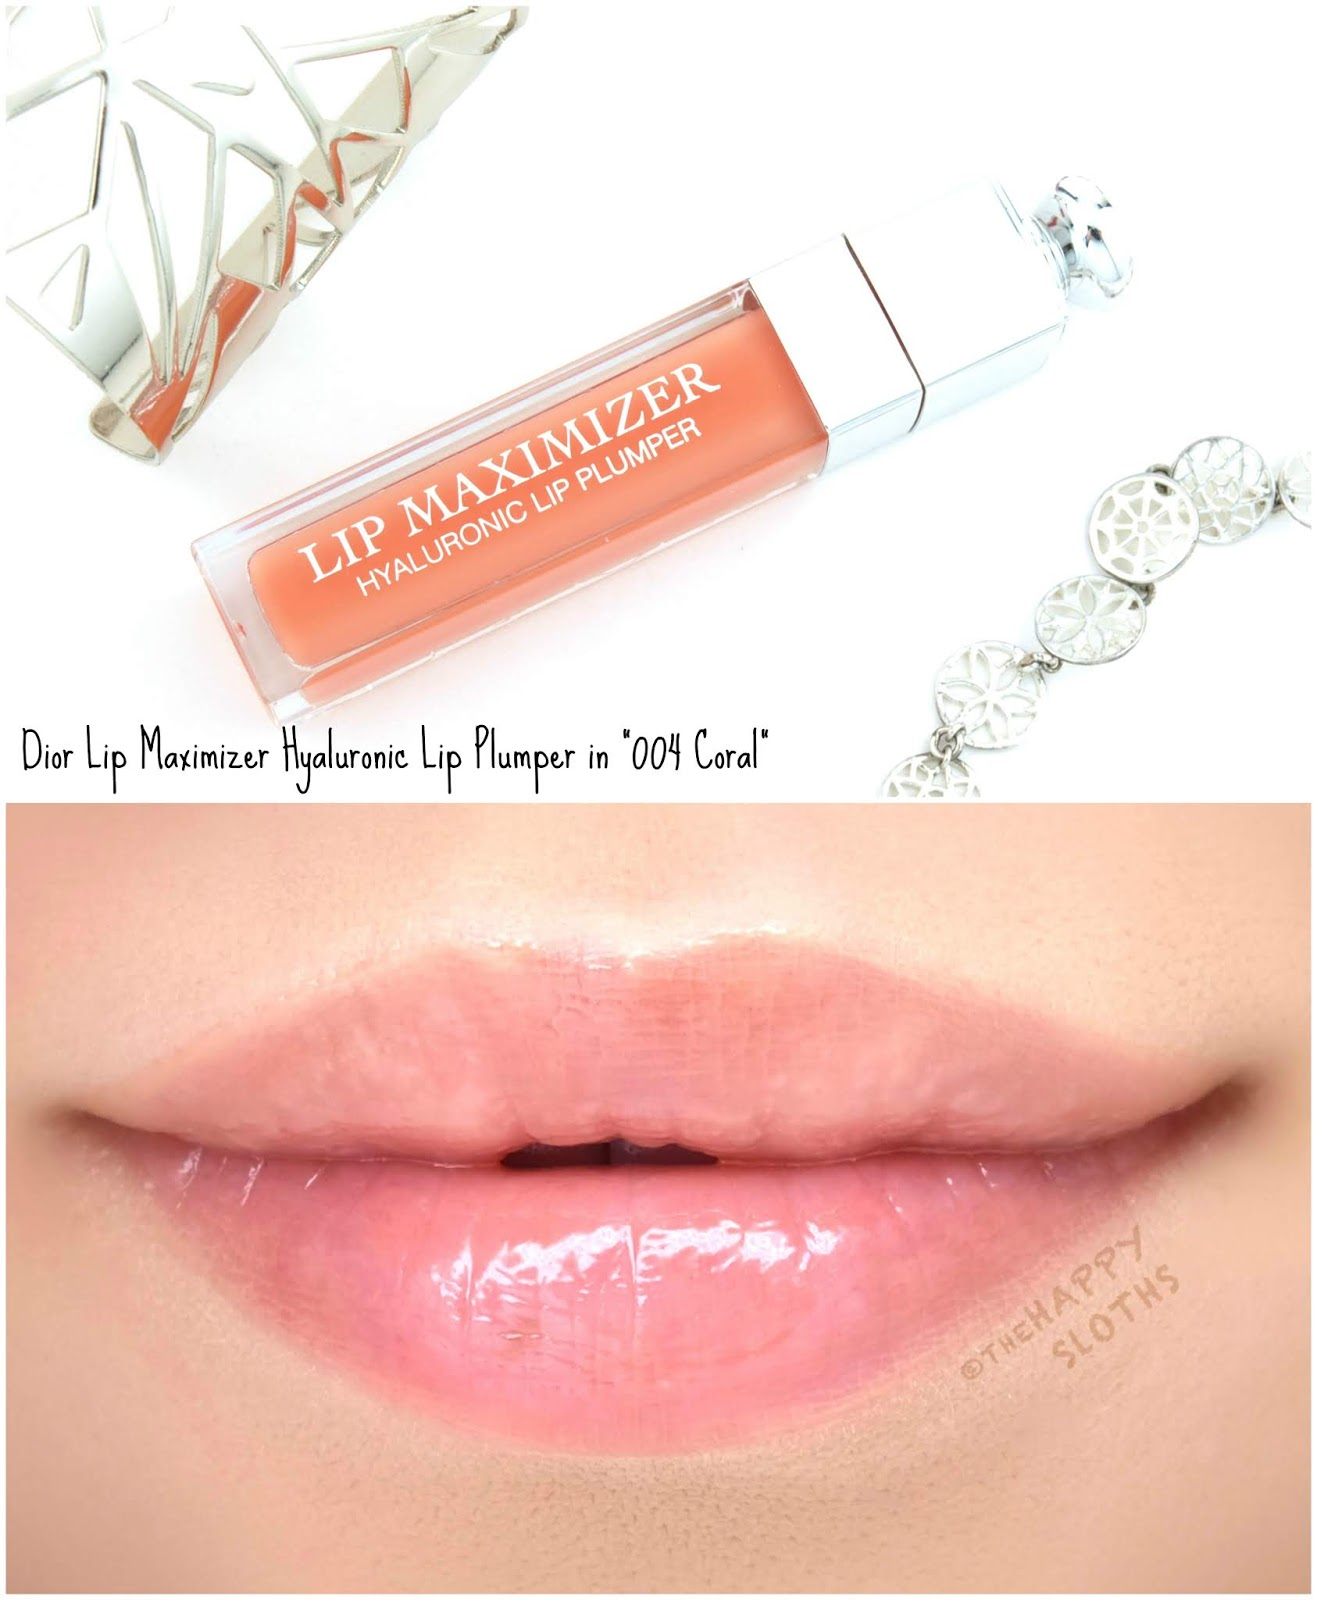 "Dior | Lip Maximizer Hyaluronic Lip Plumper in ""004 Coral"": Review and Swatches"